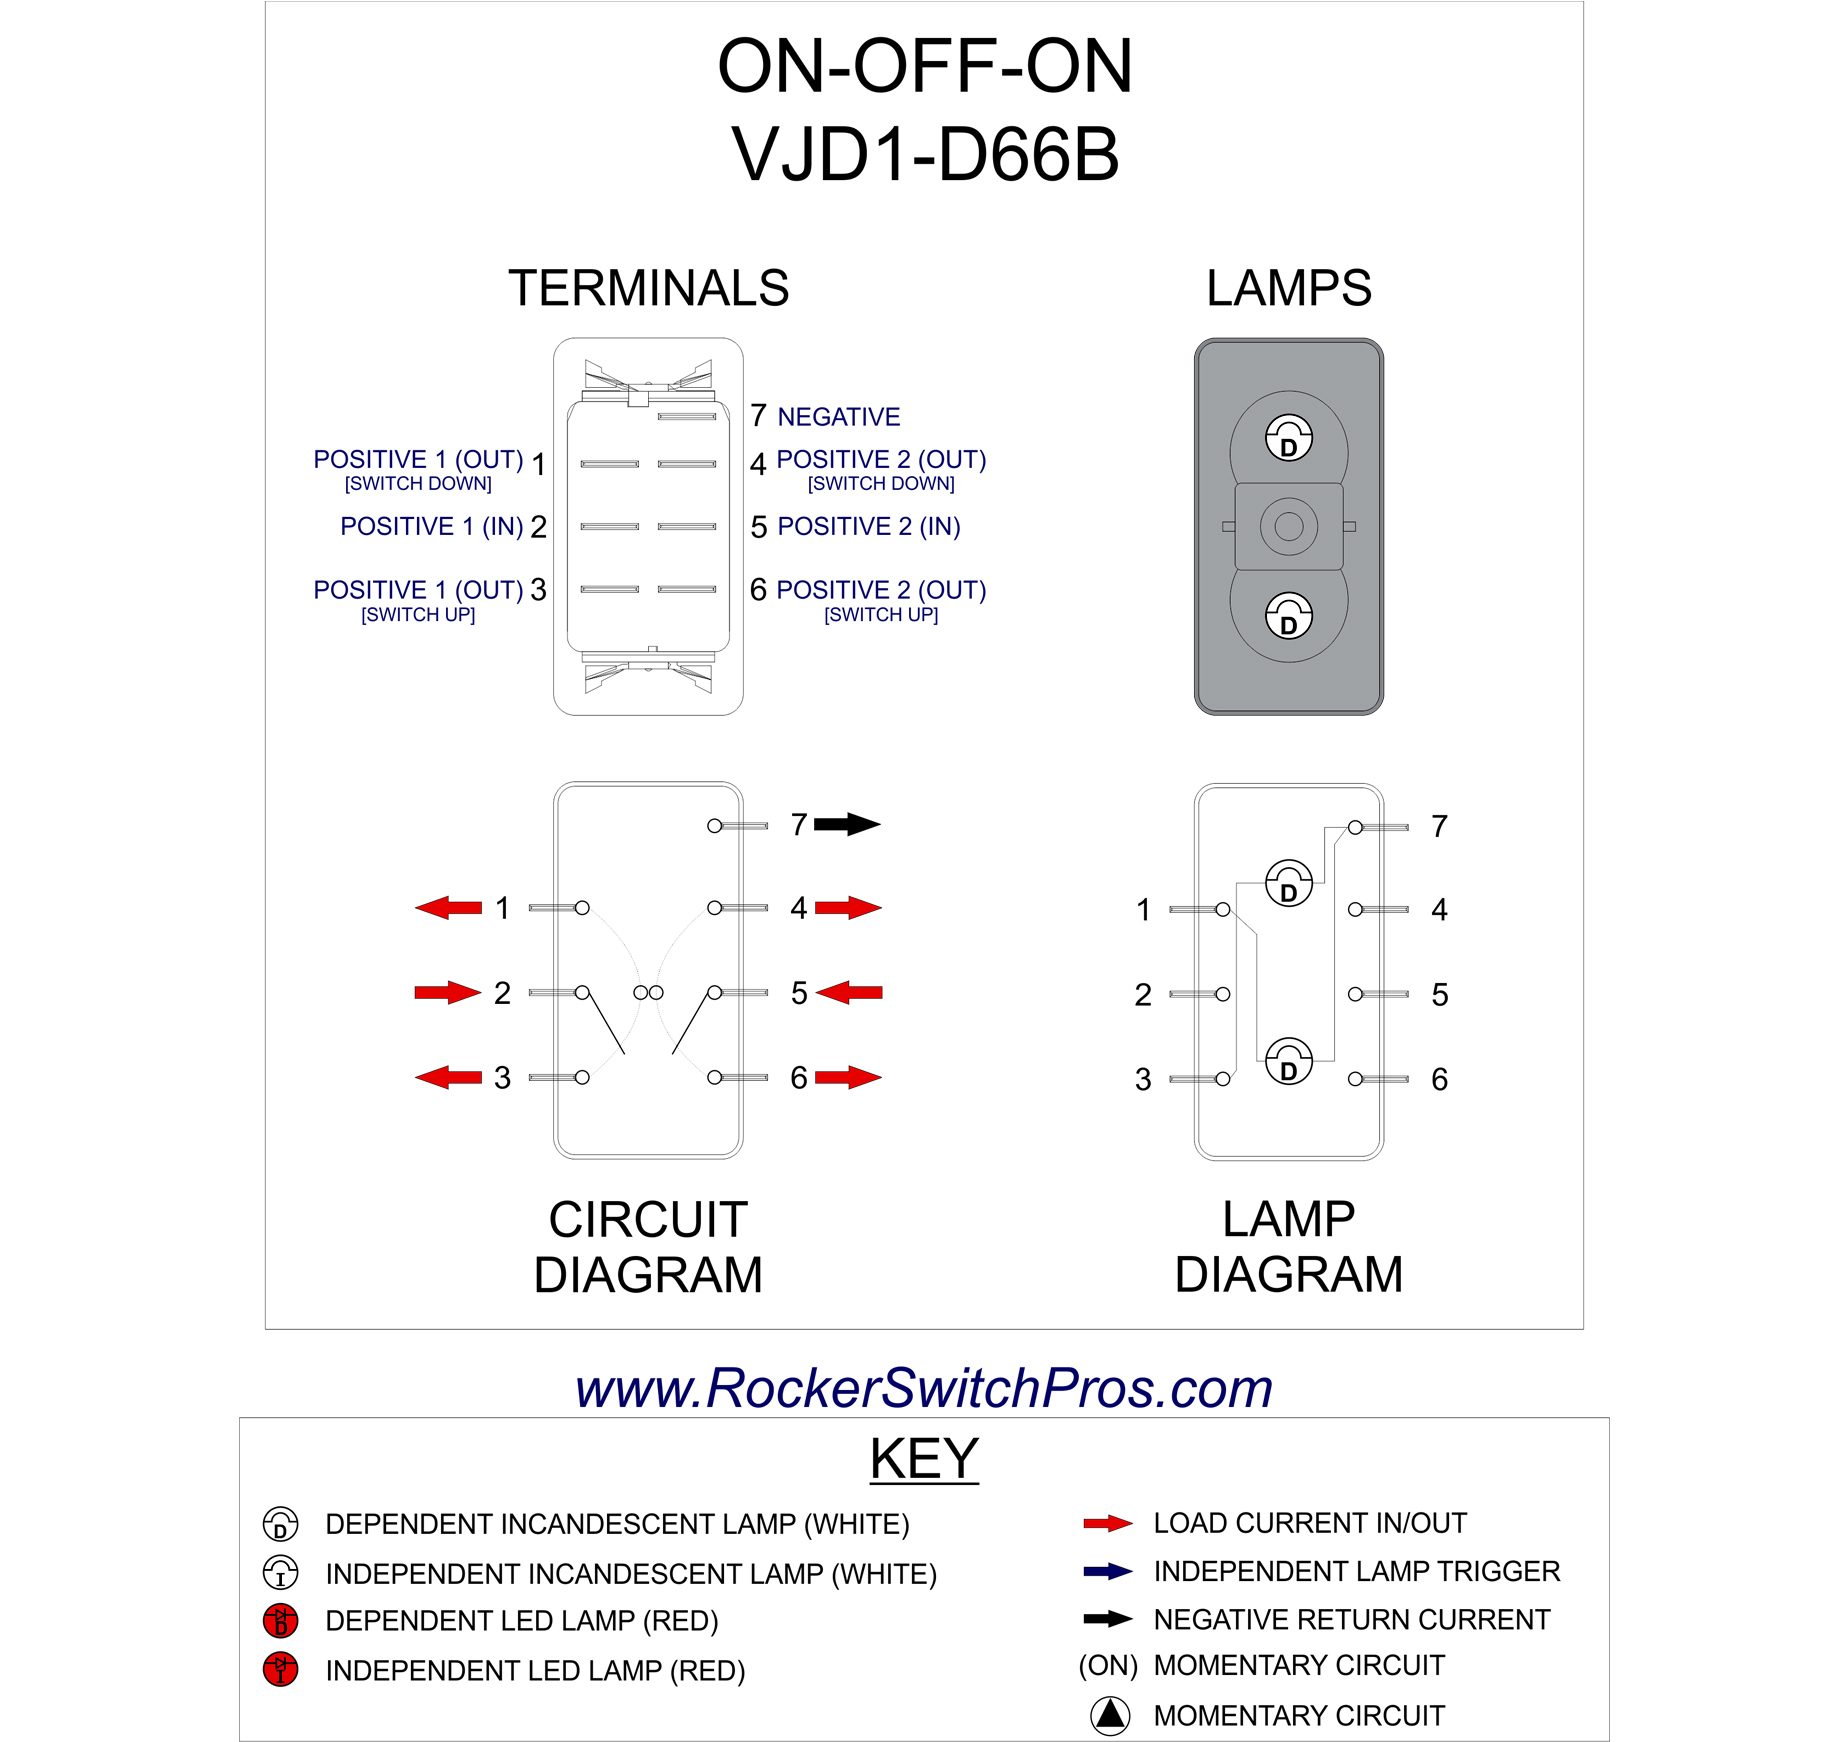 On Off On Toggle Switch Wiring Diagram   Manual E-Books - On Off On Toggle Switch Wiring Diagram